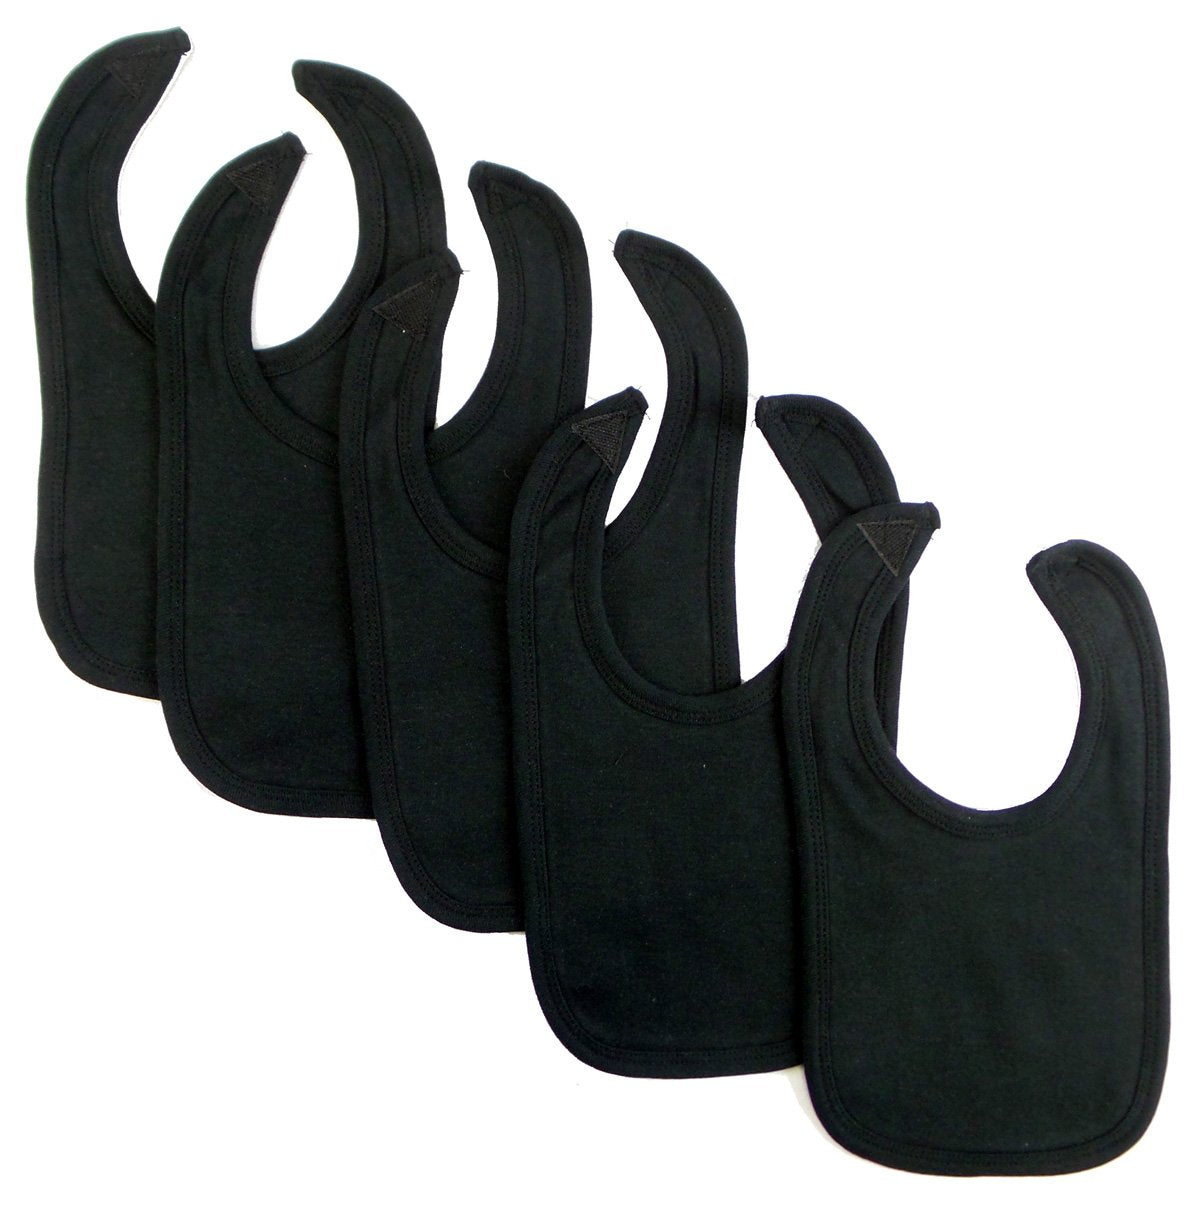 Bambini Black Interlock Bib (Pack of 5) - Baby World Inc